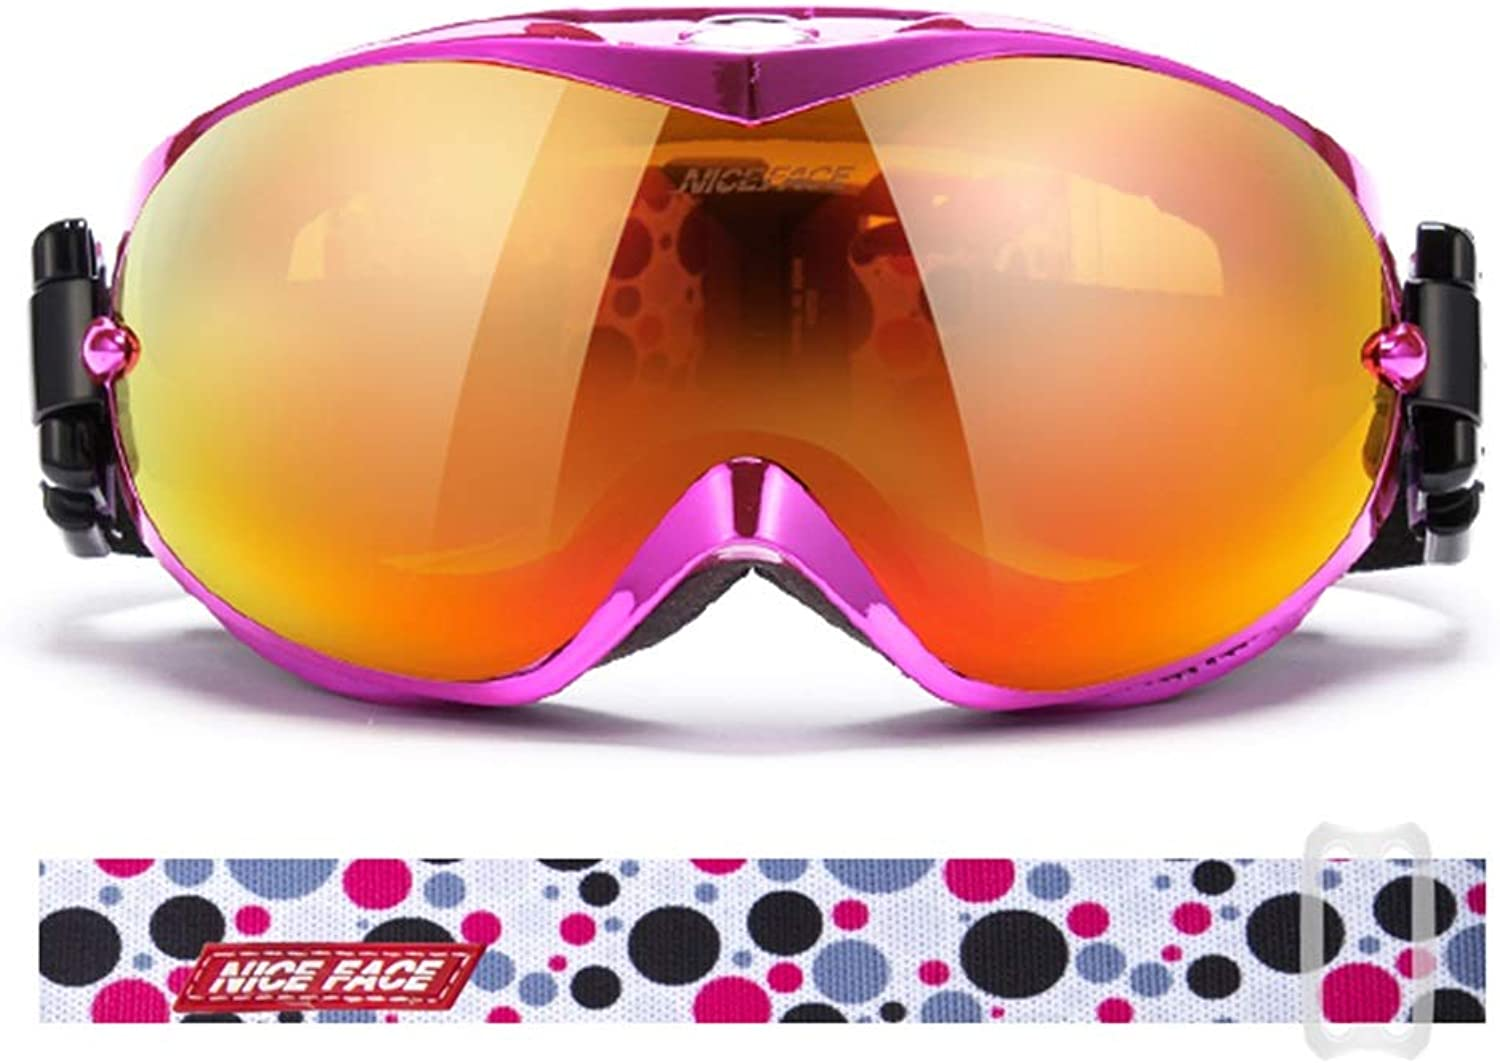 Ski goggles Ski GogglesSpace PC, Can Bring Into Myopia Glasses, Double Anti-fog, Plating Frame, Adult Universal Large-area Spherical Mountaineering Ski Plating Frame Coated Glasses (7 colors Option